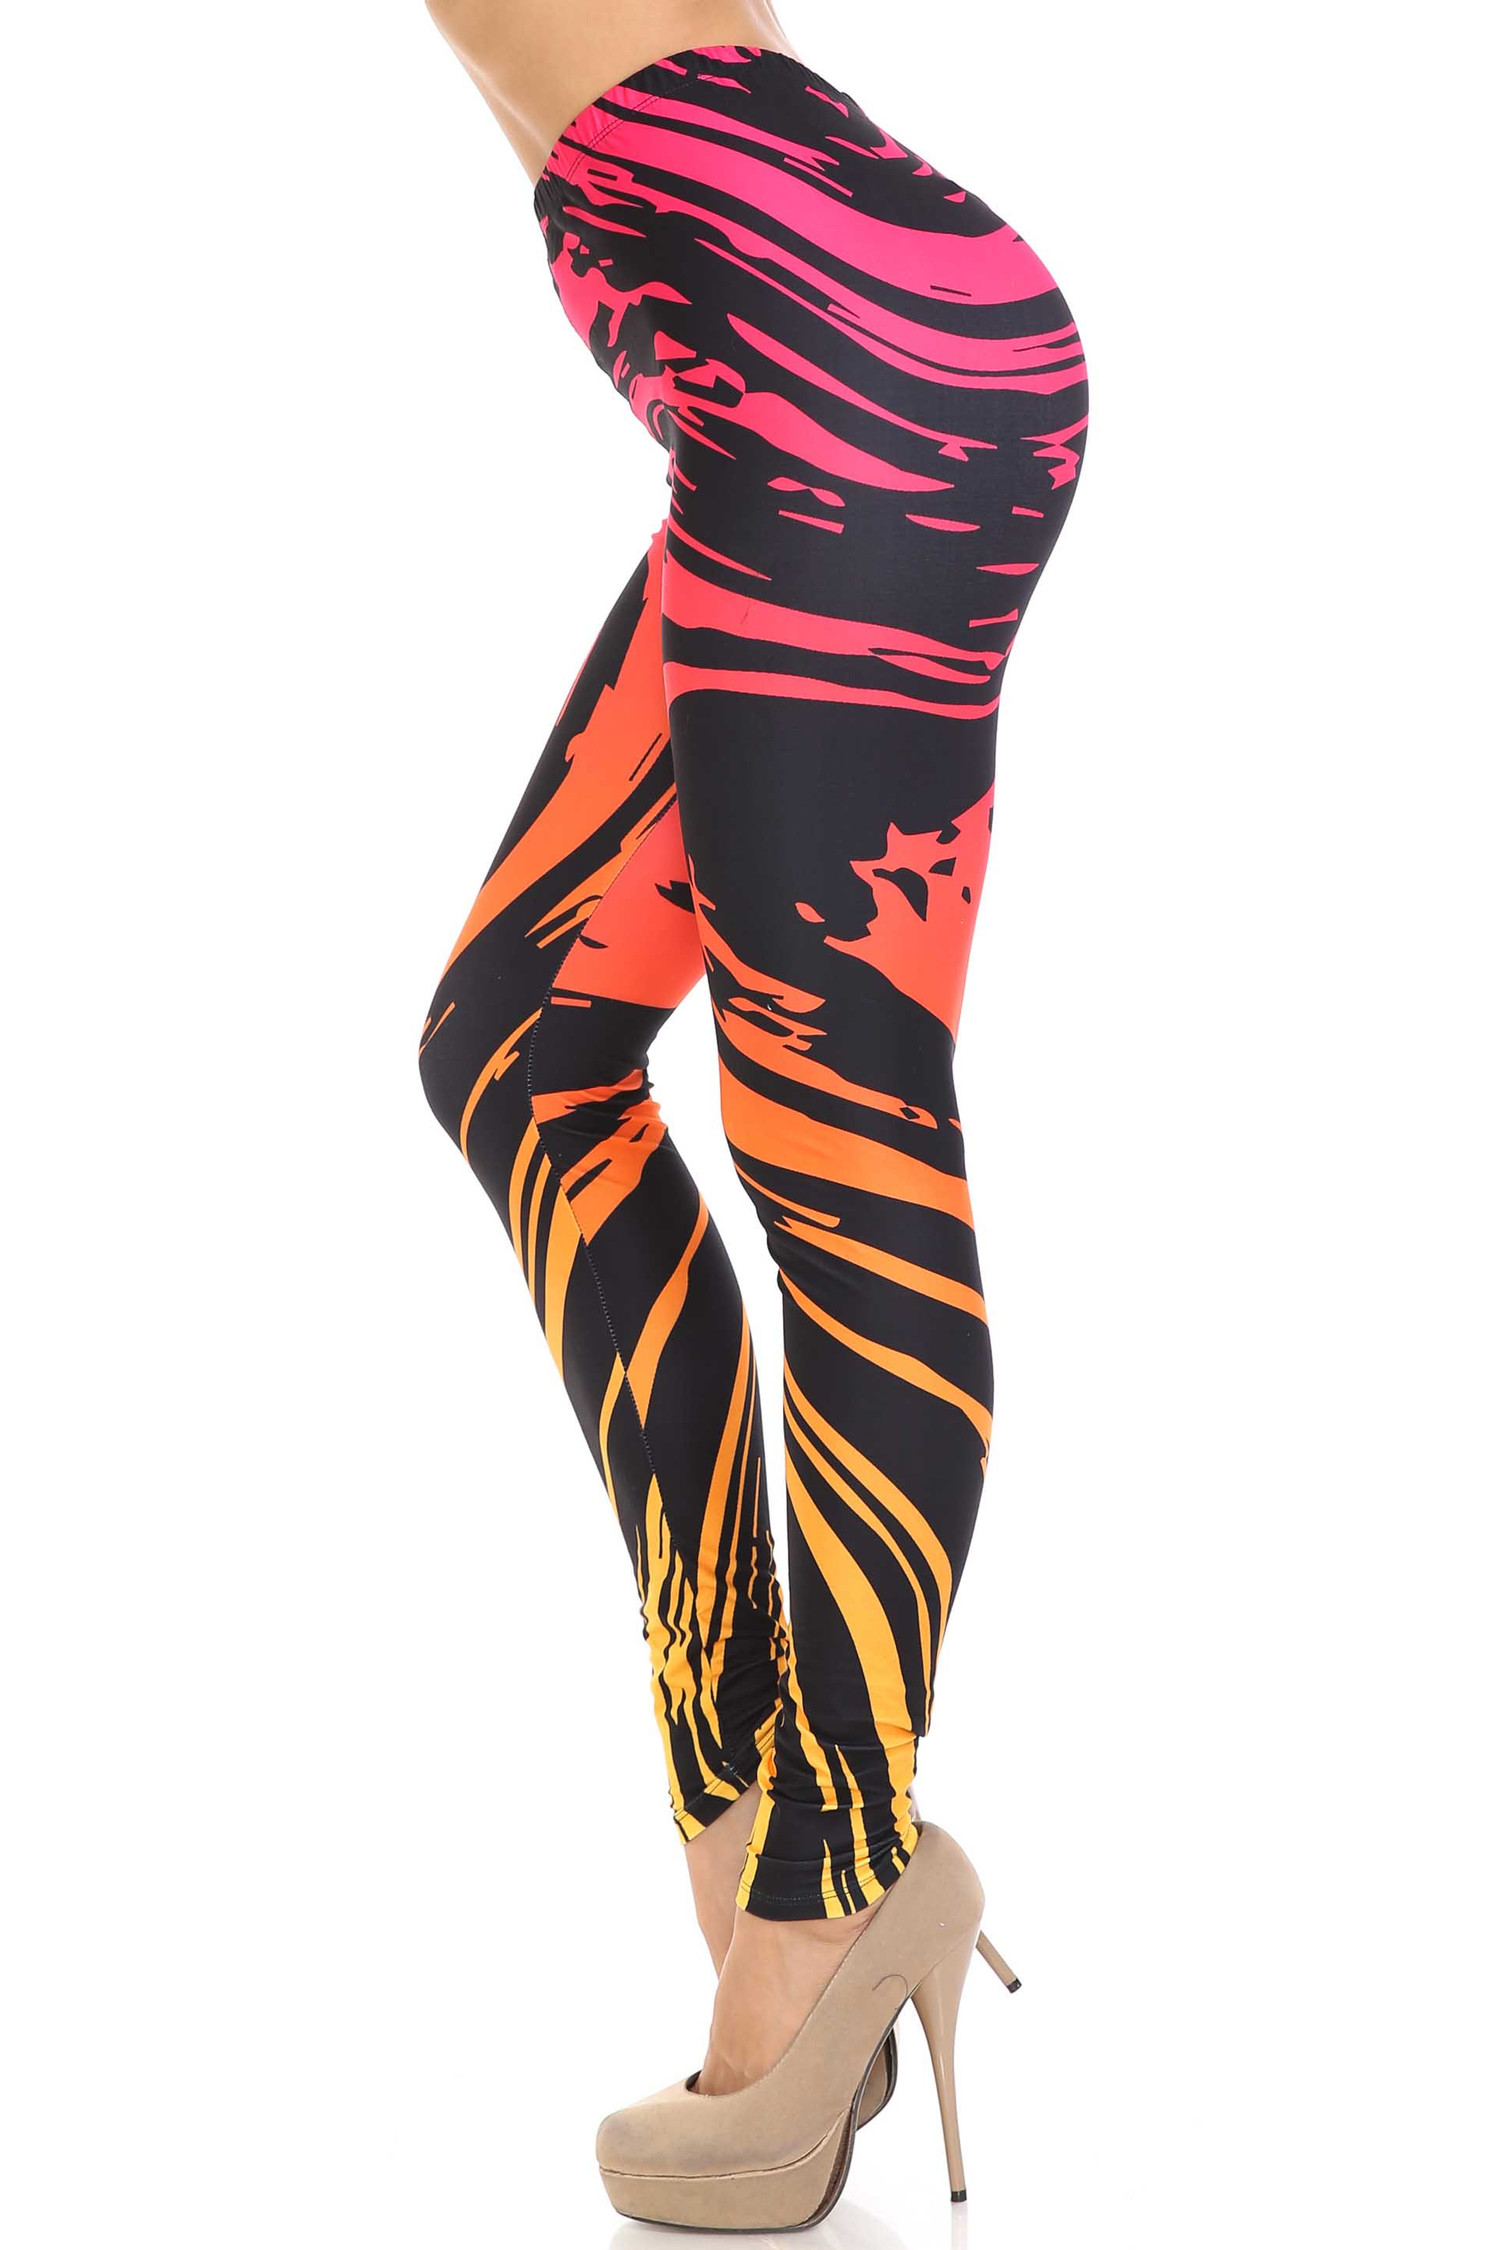 Creamy Soft Ombre Swirling Paint Stroke Extra Plus Size Leggings - 3X-5X - USA Fashion™